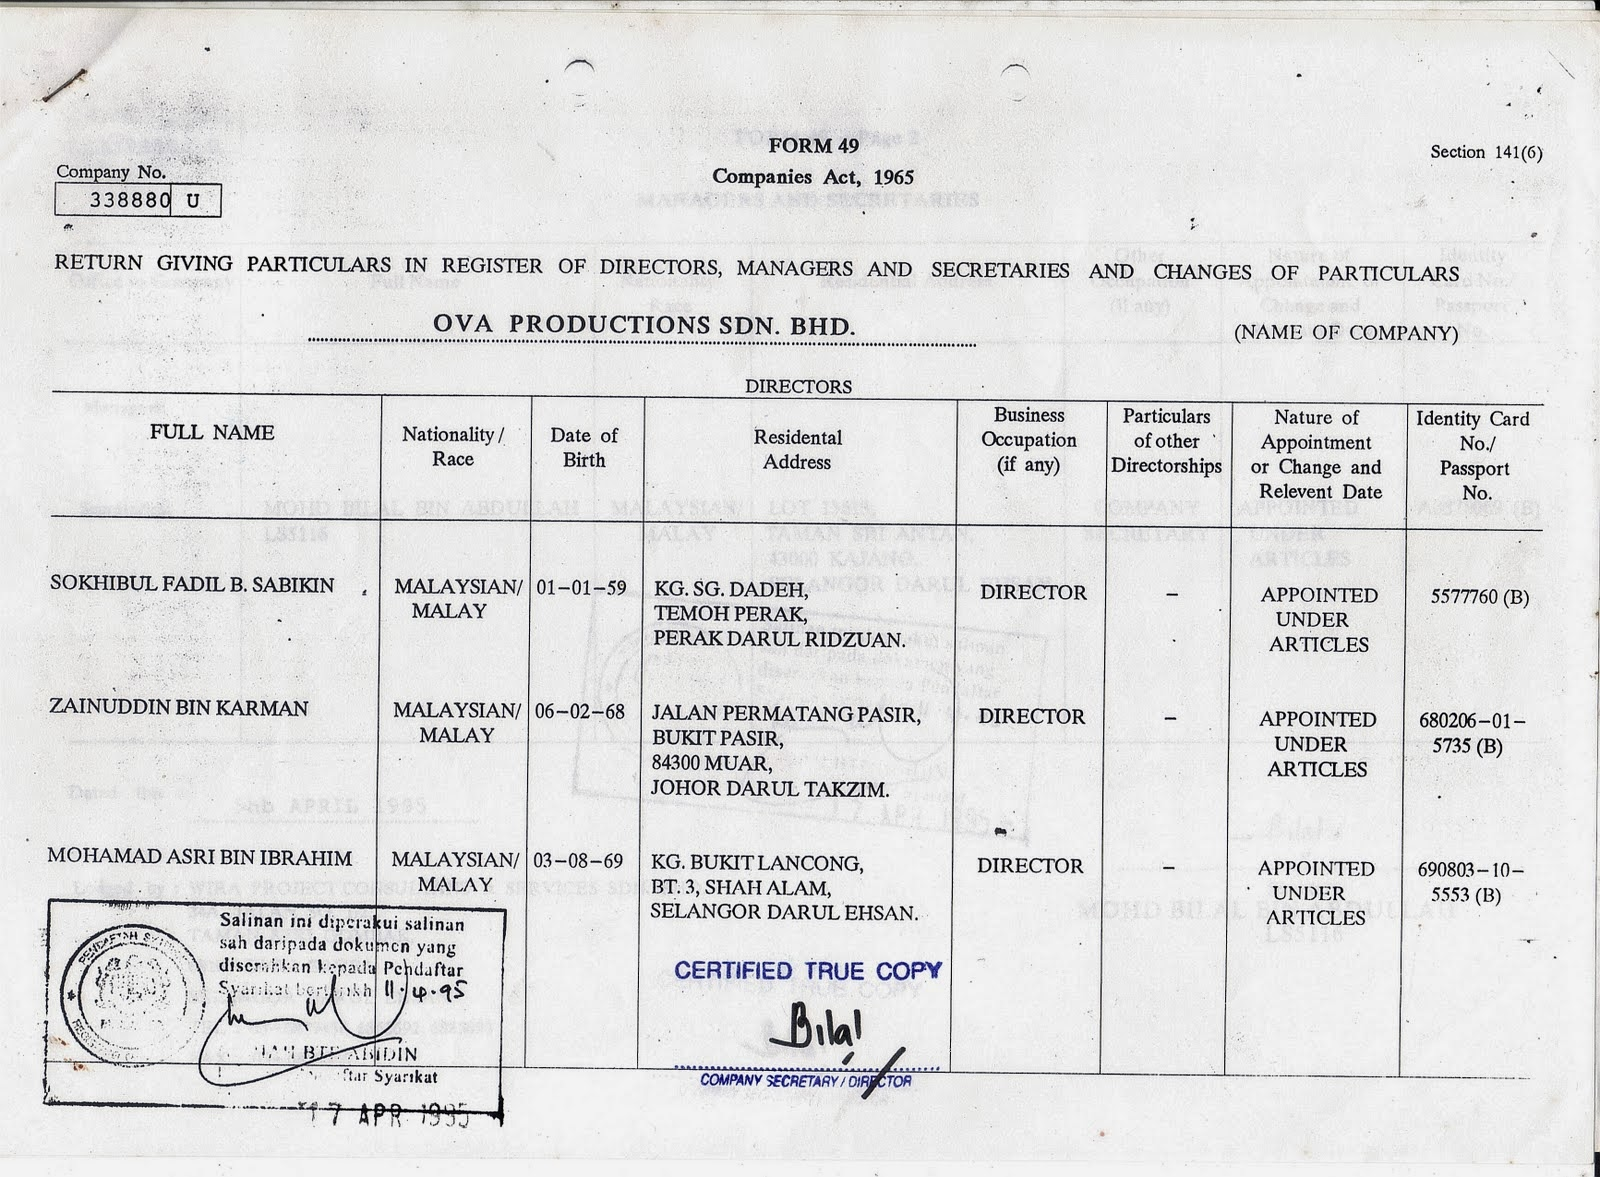 form 49 Return giving particulars in register of directors, managers and secretaries and changes of particulars form 49 companies act, 1965 (section 141(6) .